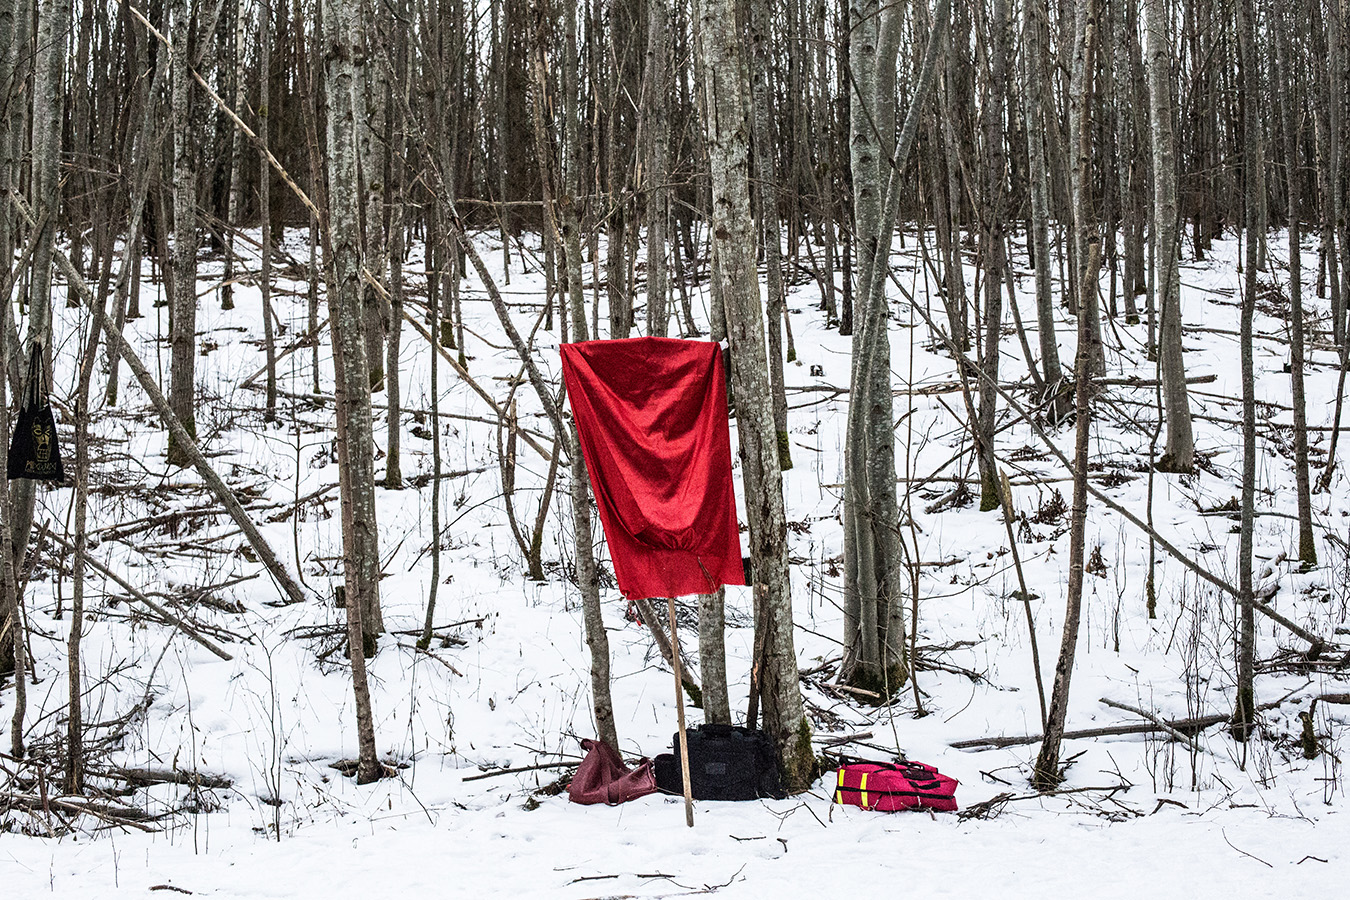 A mock battle banner rests in a forest during a training session for Viking reenactors in Norway. February 2018.